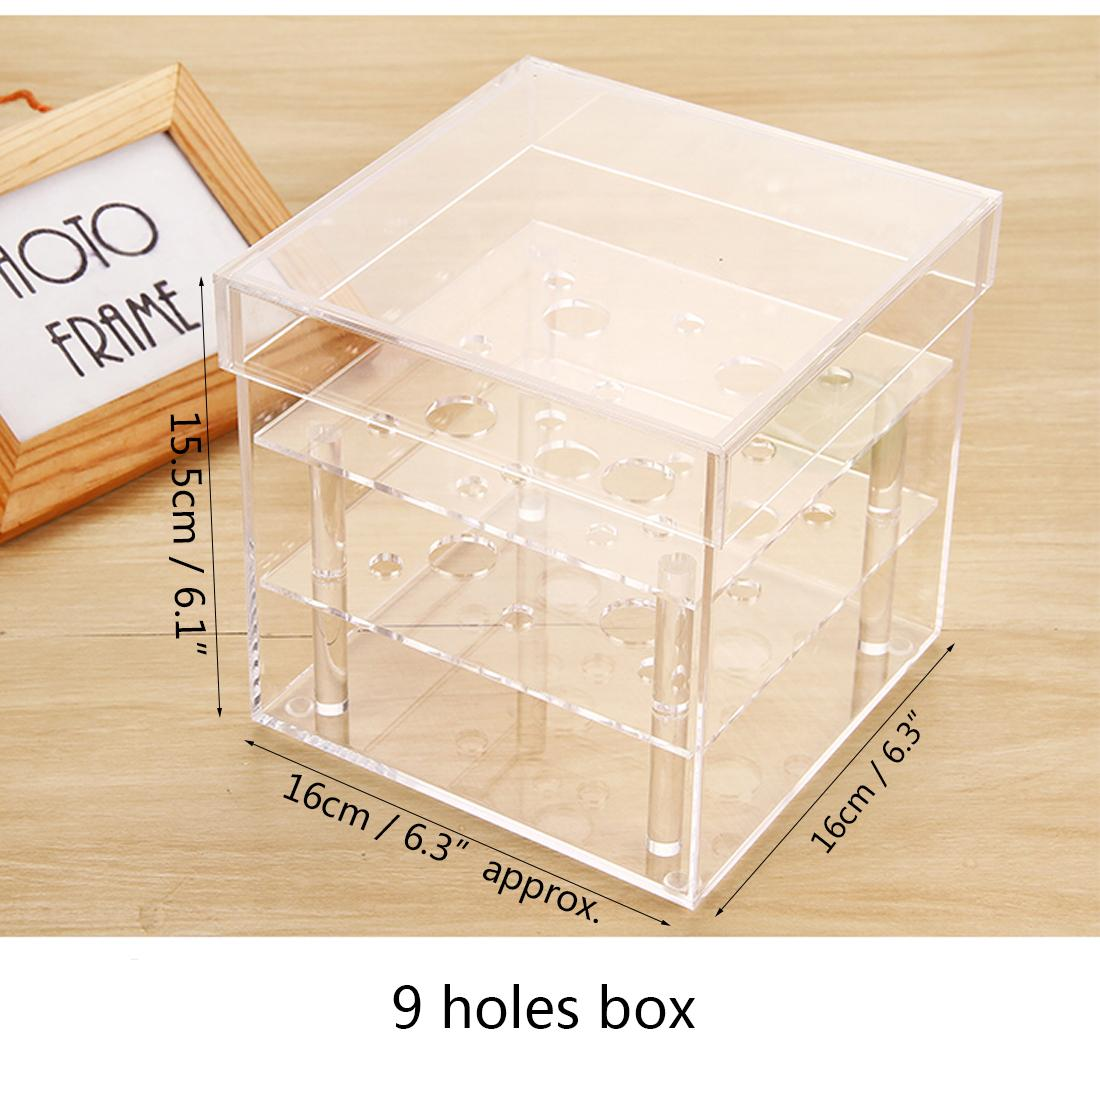 b841a5f10f67 2019 New Arrival Acrylic Rose Box Cosmetic Box With Removable Lid Nice Gift  Packaging For Flowers From Sweet4, $7.03 | DHgate.Com